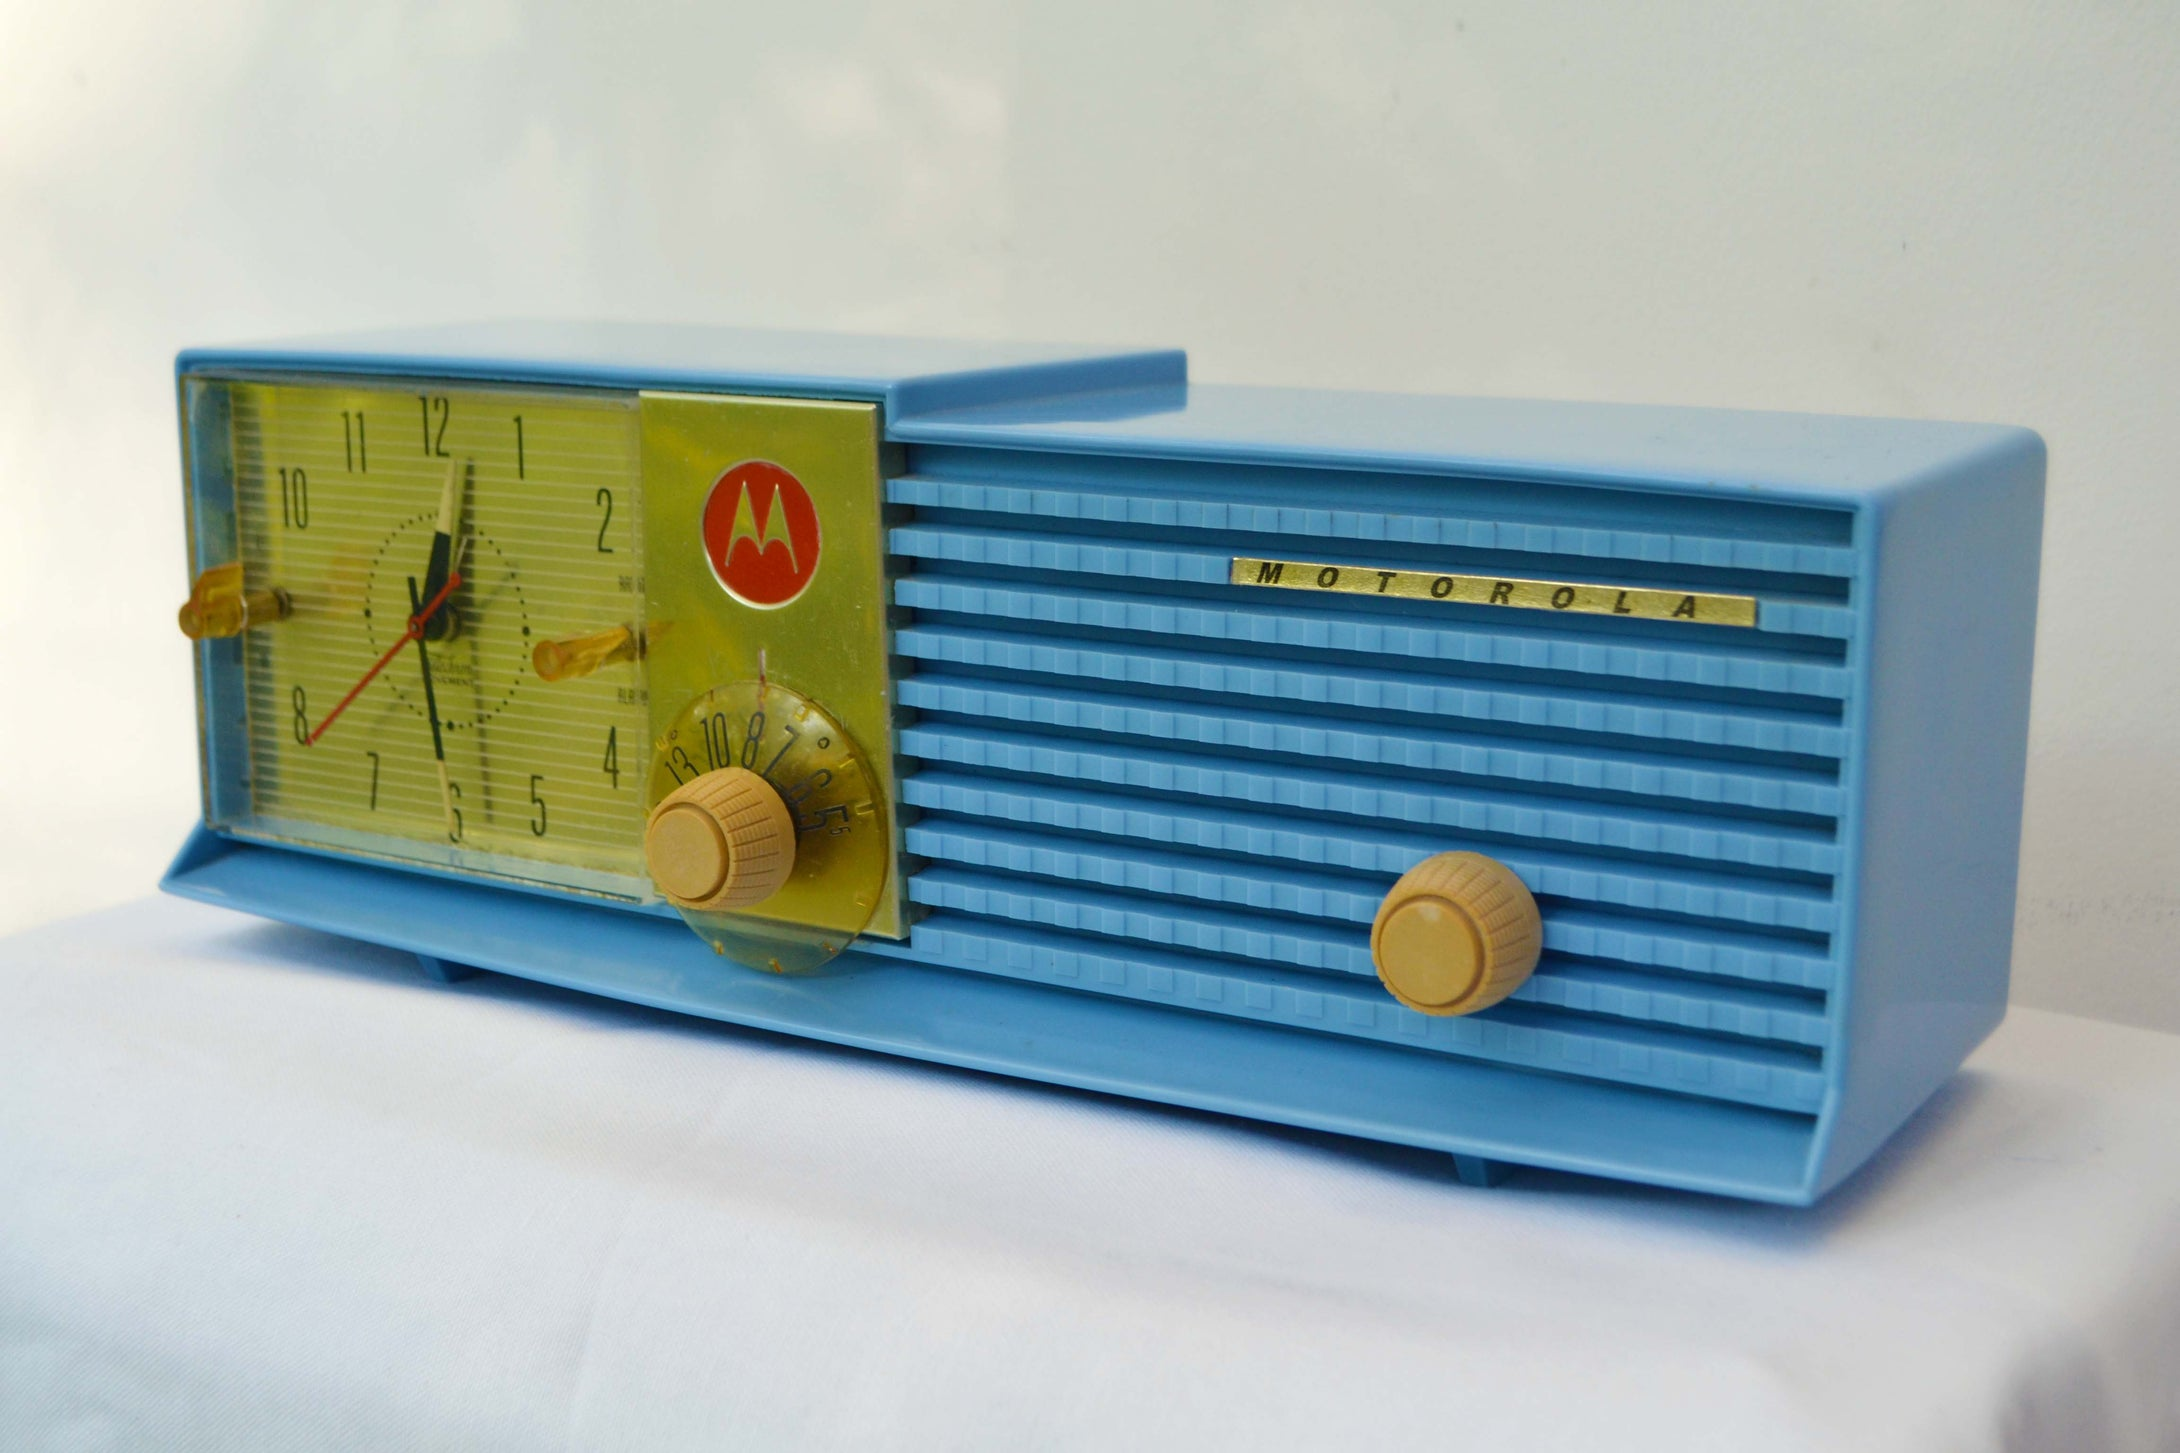 SOLD! - July 24, 2018 - CORNFLOWER BLUE 1957 Motorola 57CD Tube AM Clock Radio Excellent Condition! - [product_type} - Motorola - Retro Radio Farm